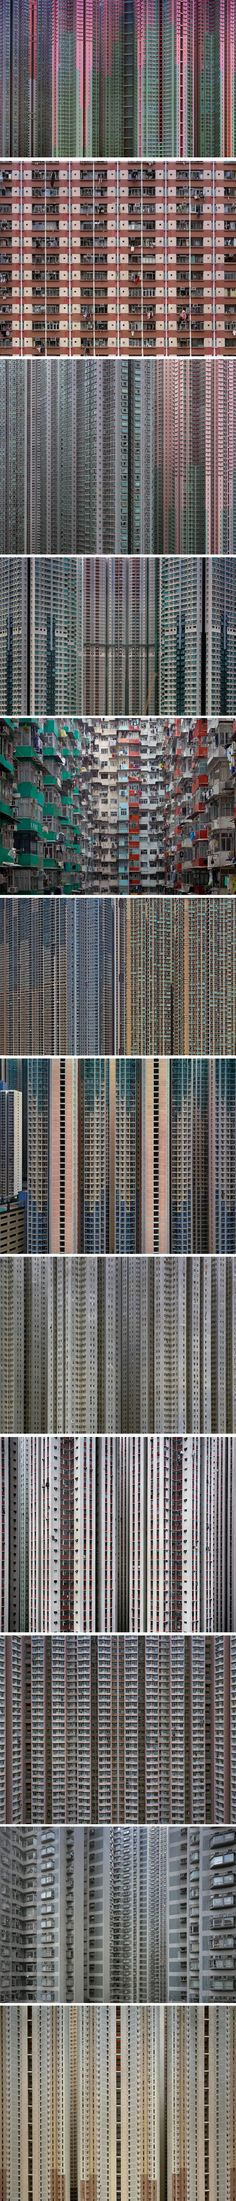 Michael Wolf's Architecture of Density project   - Hong Kong's  high-rise architecture via Wired.com